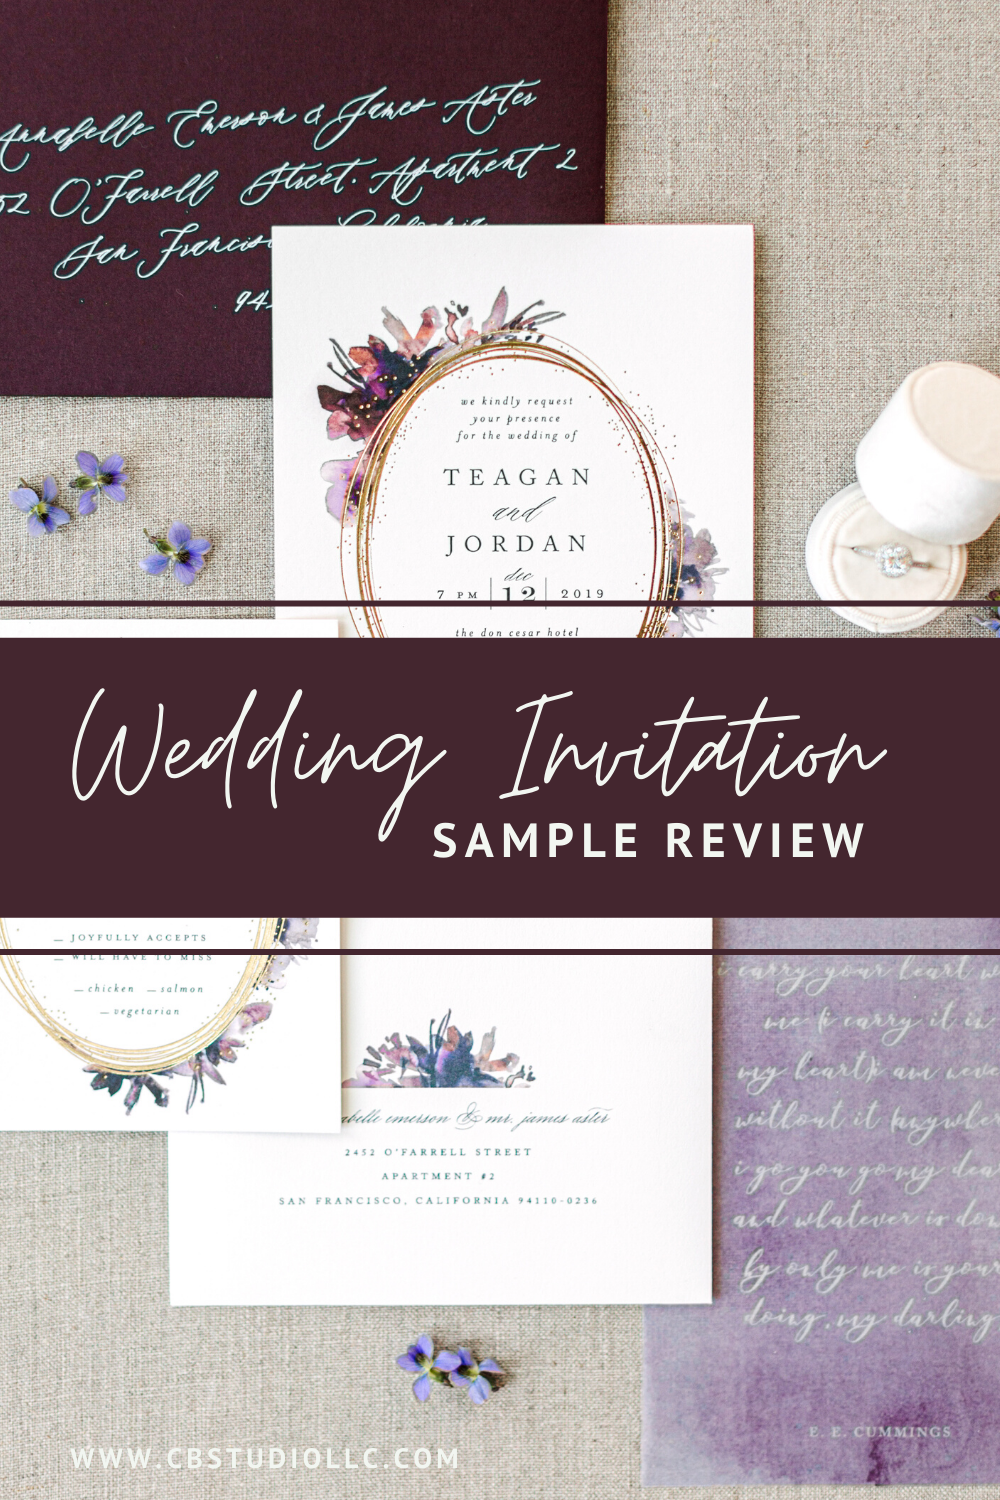 Wedding Invitation Sample Review